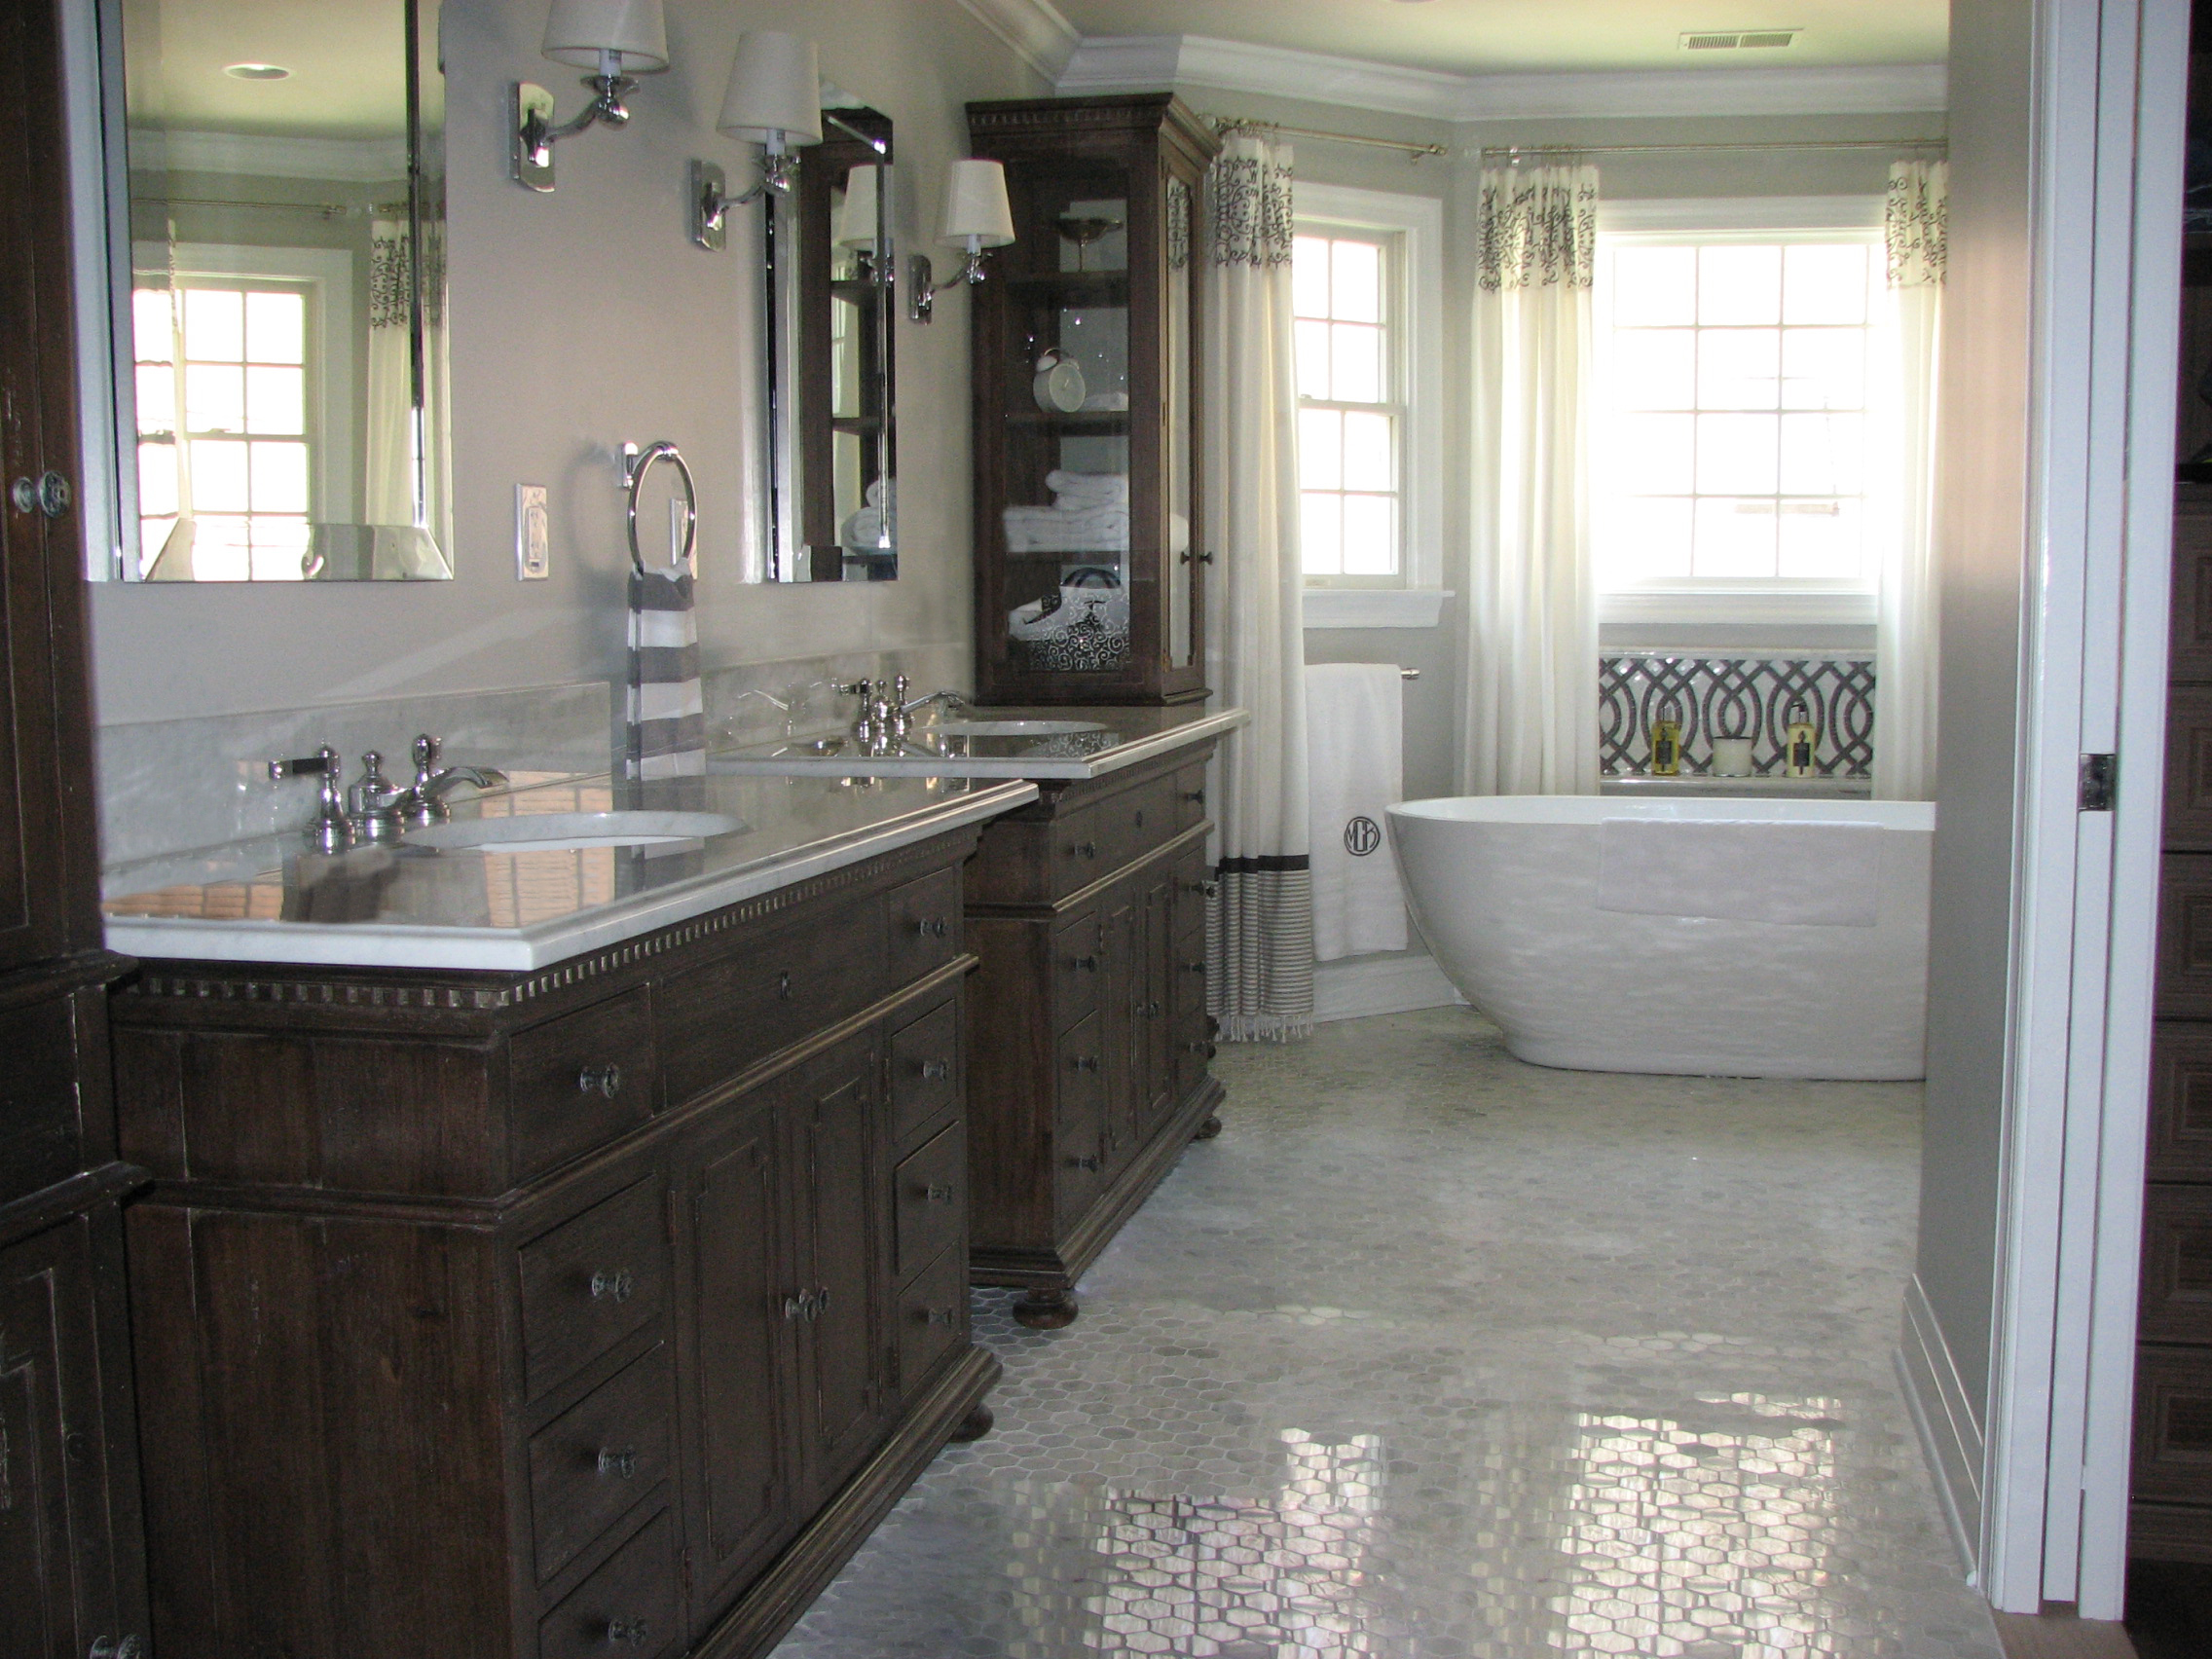 4_18_14_Basic_Bathroom_Co_NJ